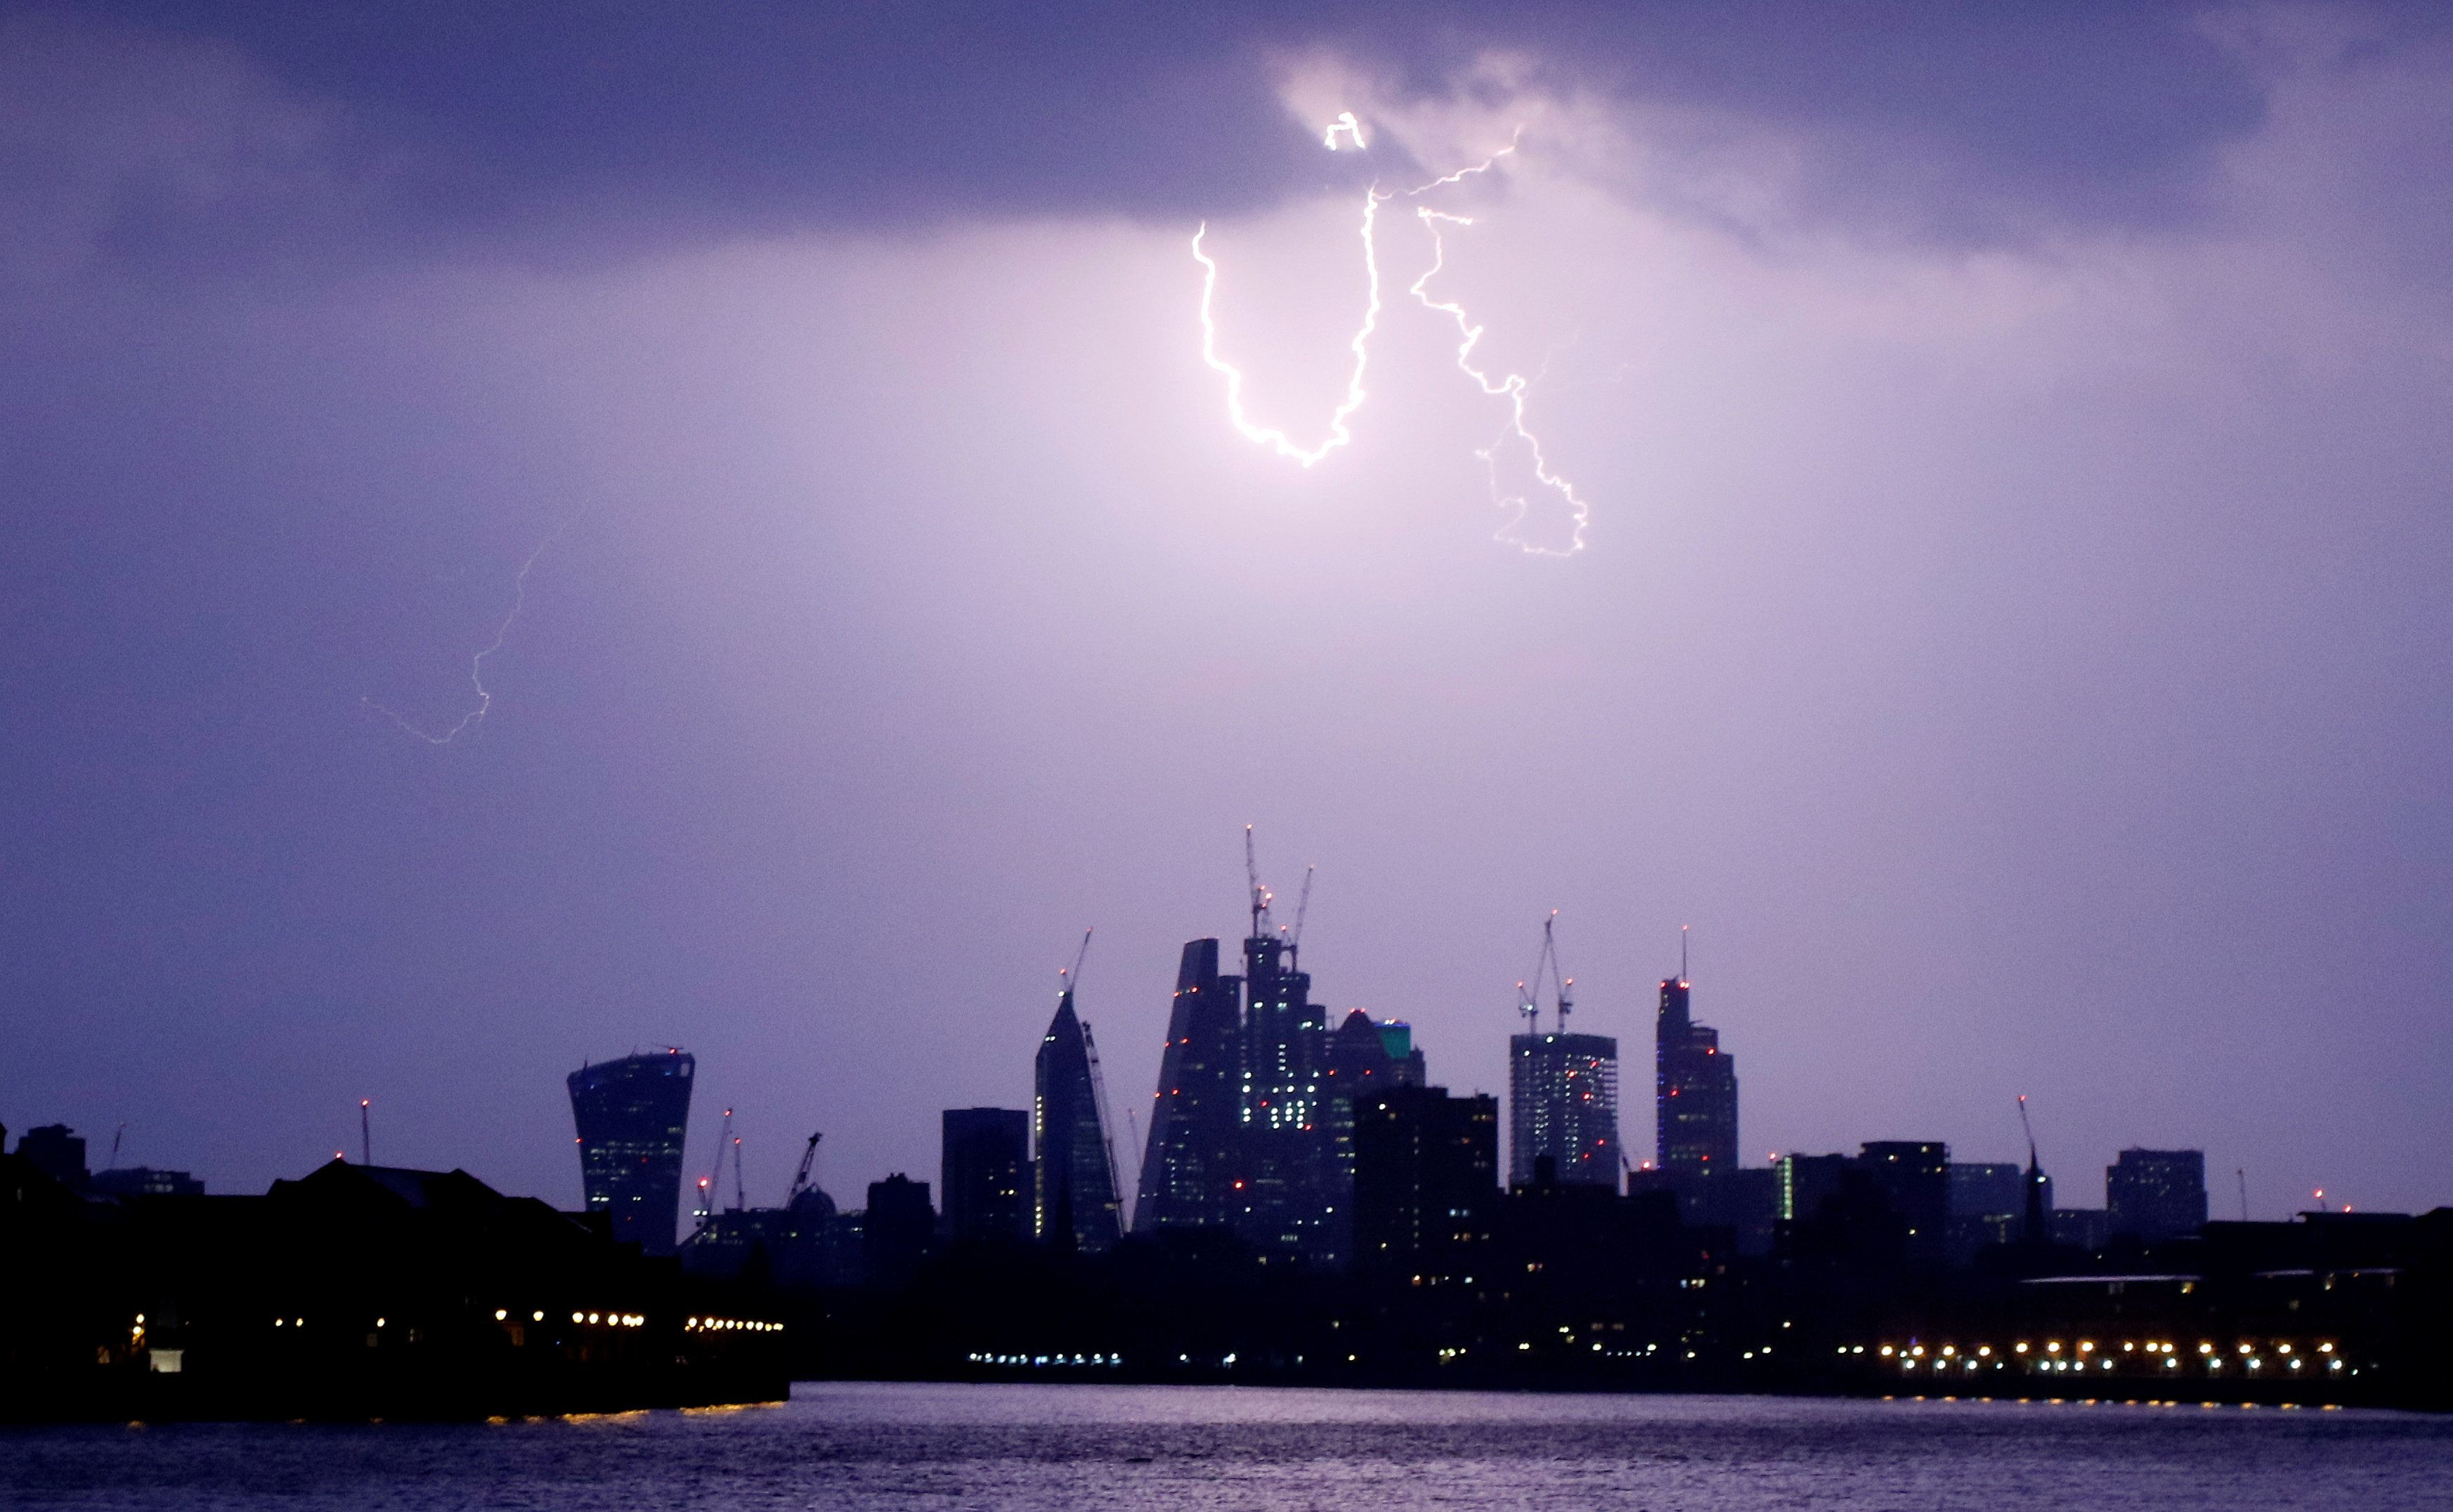 Parts of England could be hit by thunderstorms and heavy rain later today; a lightning strike over the...